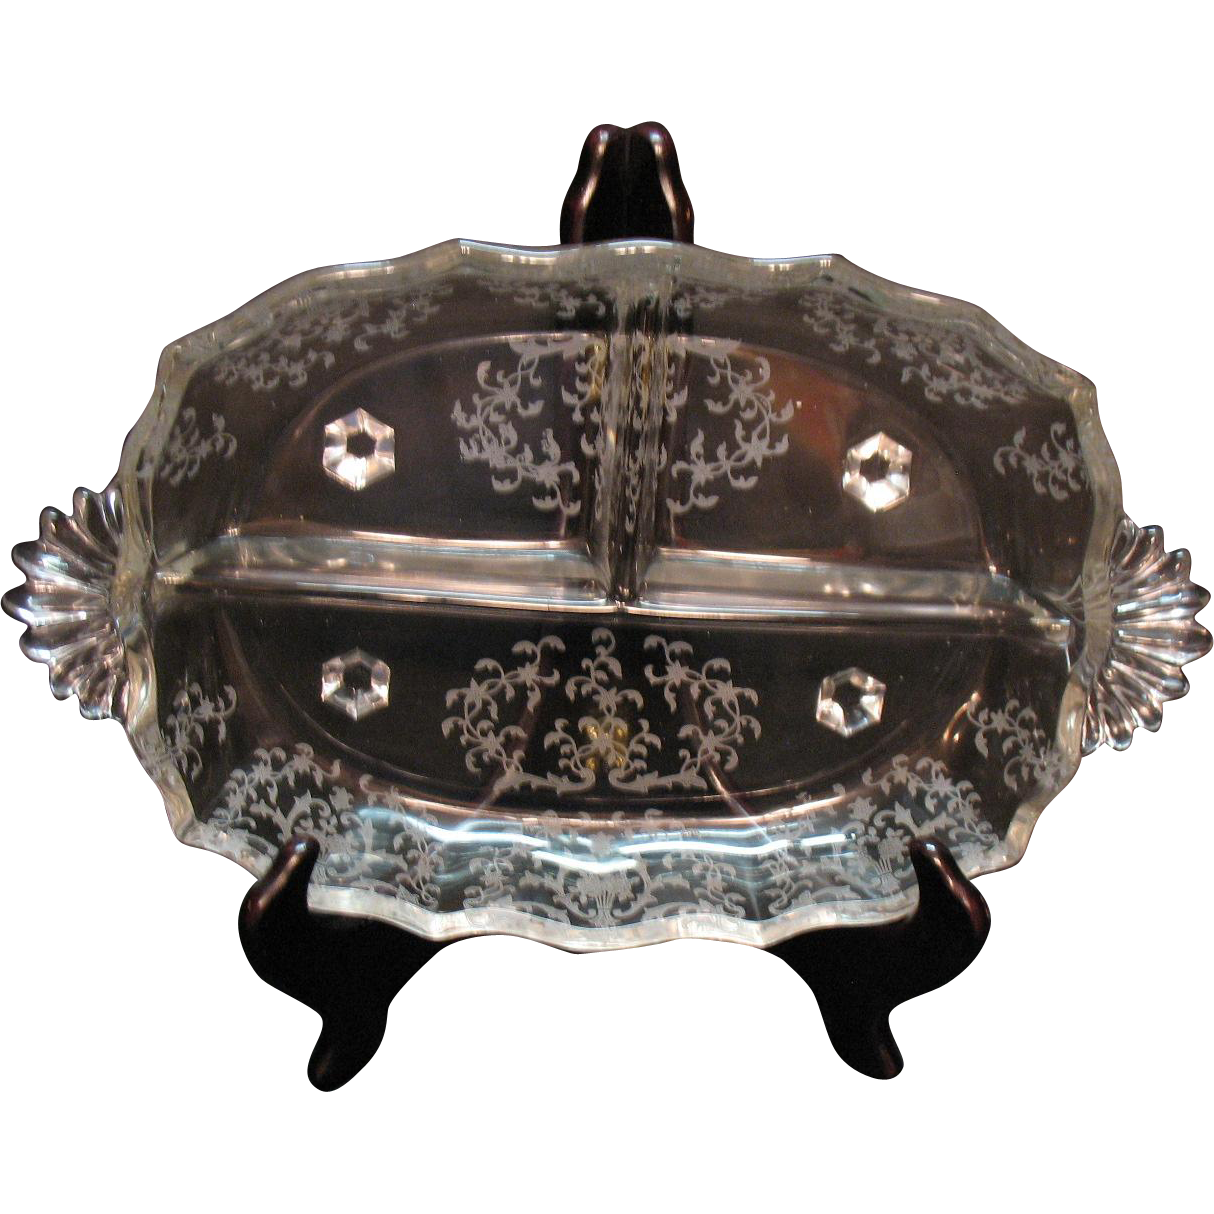 Vintage Fostoria Crystal 3 Part Relish Dish with Navarre Etching 1936-82 Very Good Condition